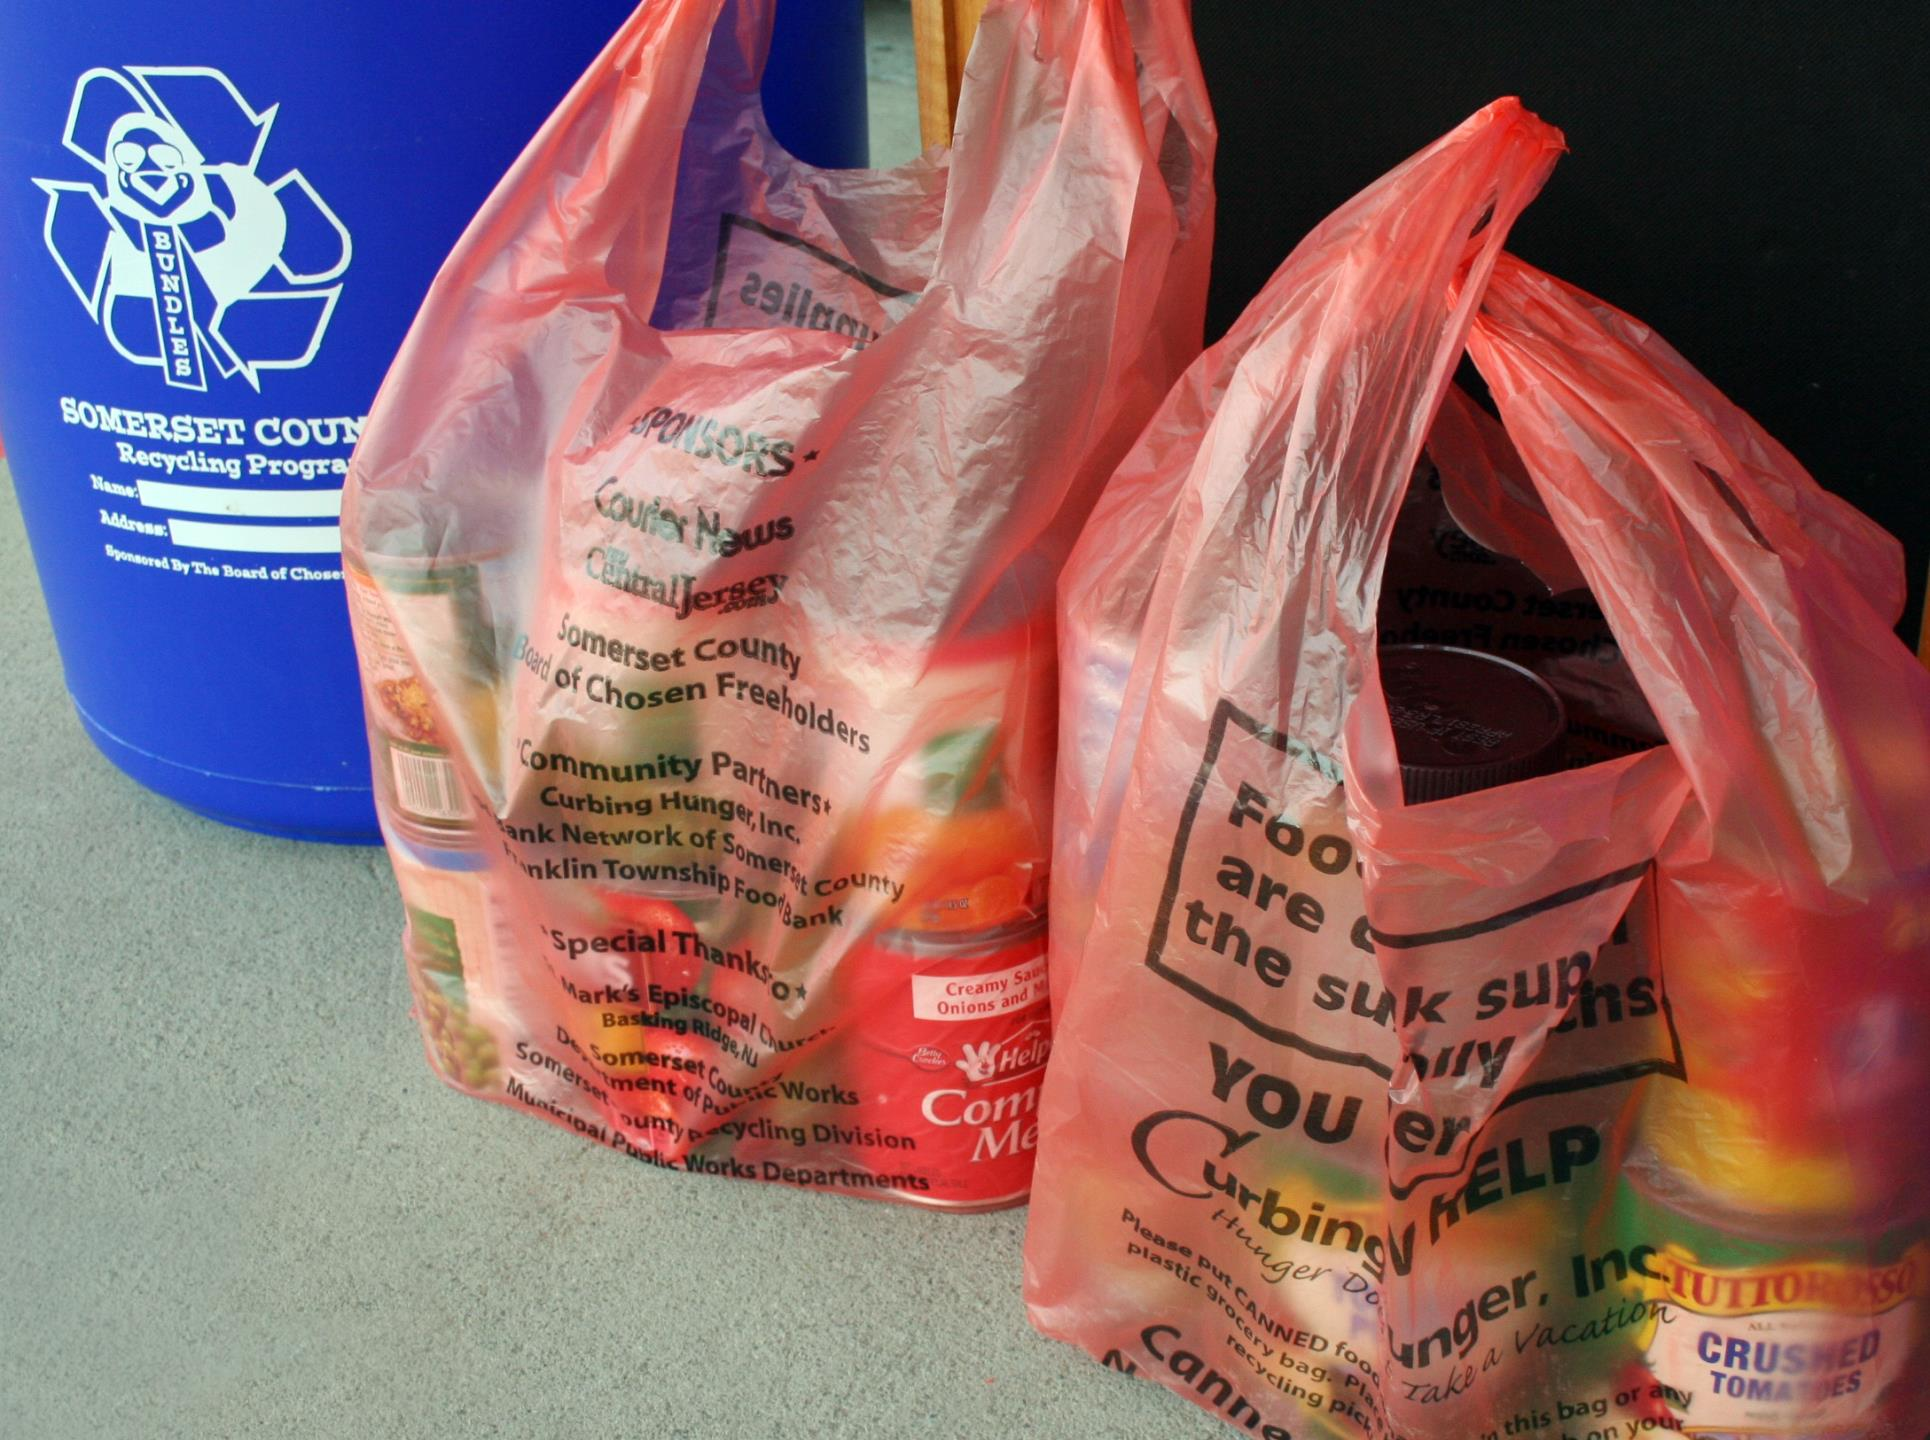 Curbing Hunger Orange Bags